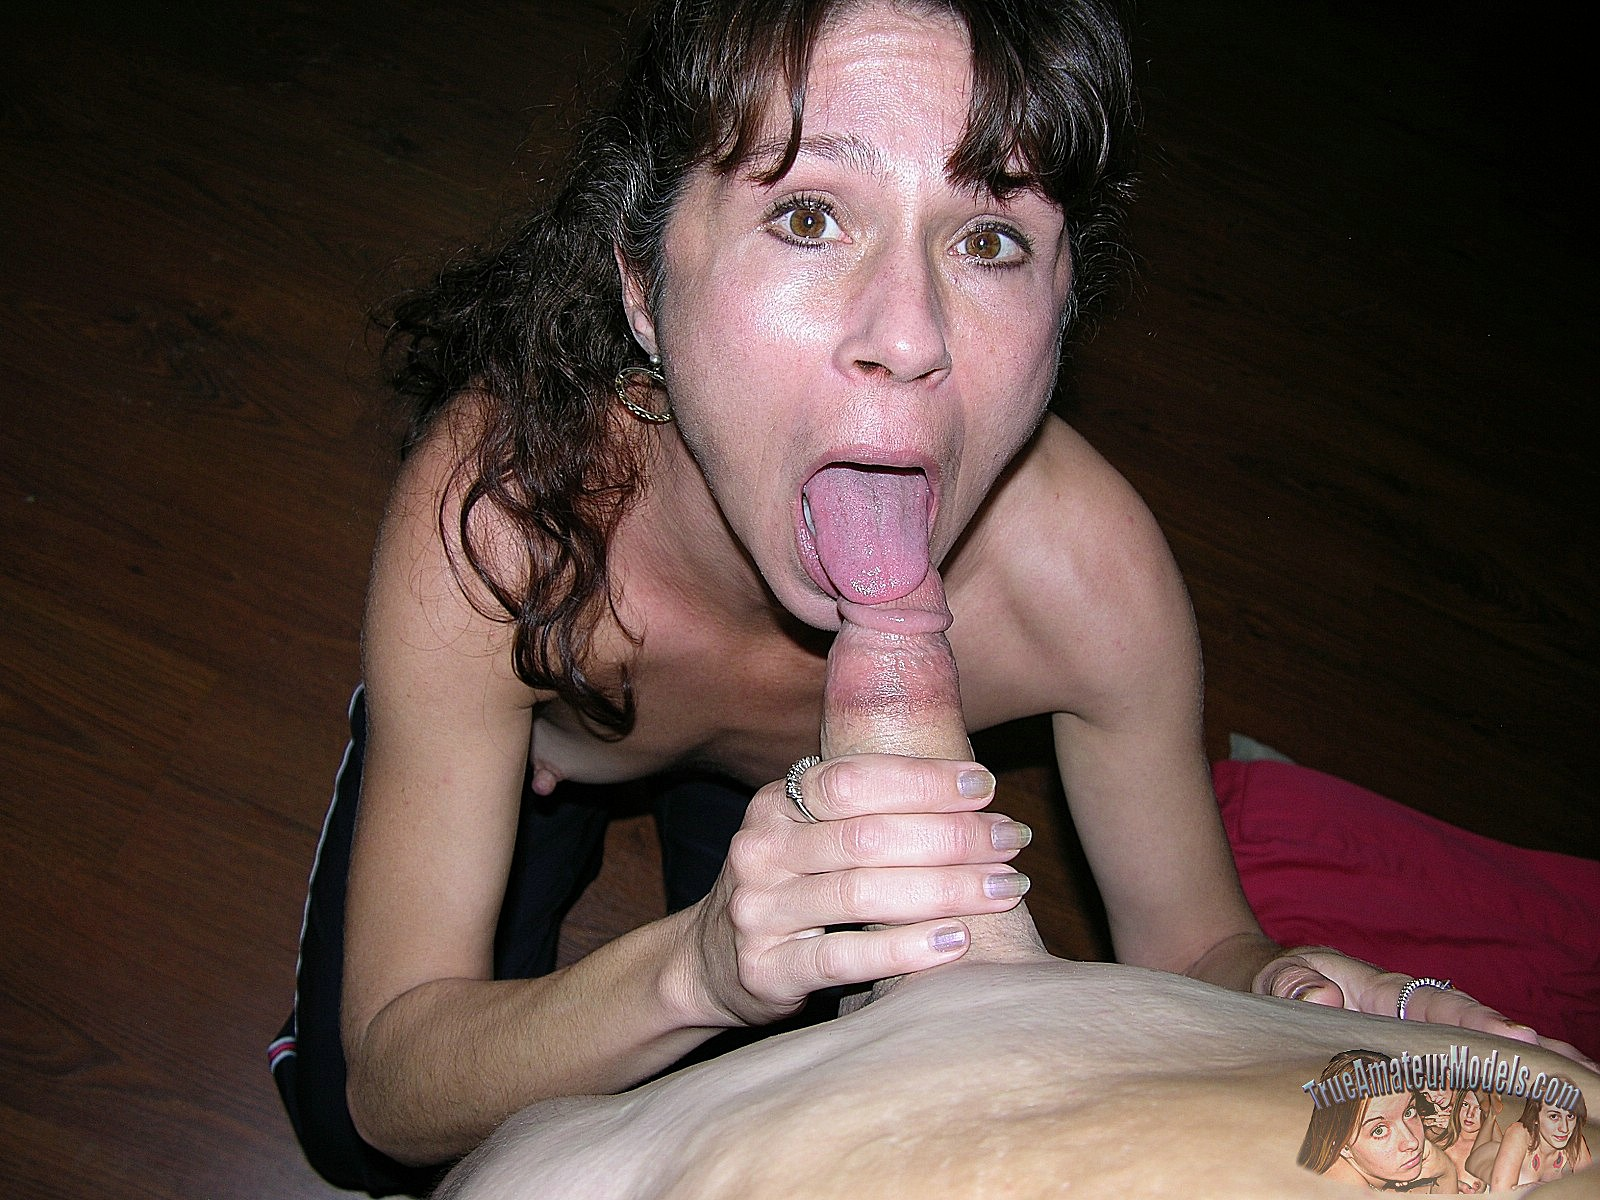 Sloppy facial for this mature